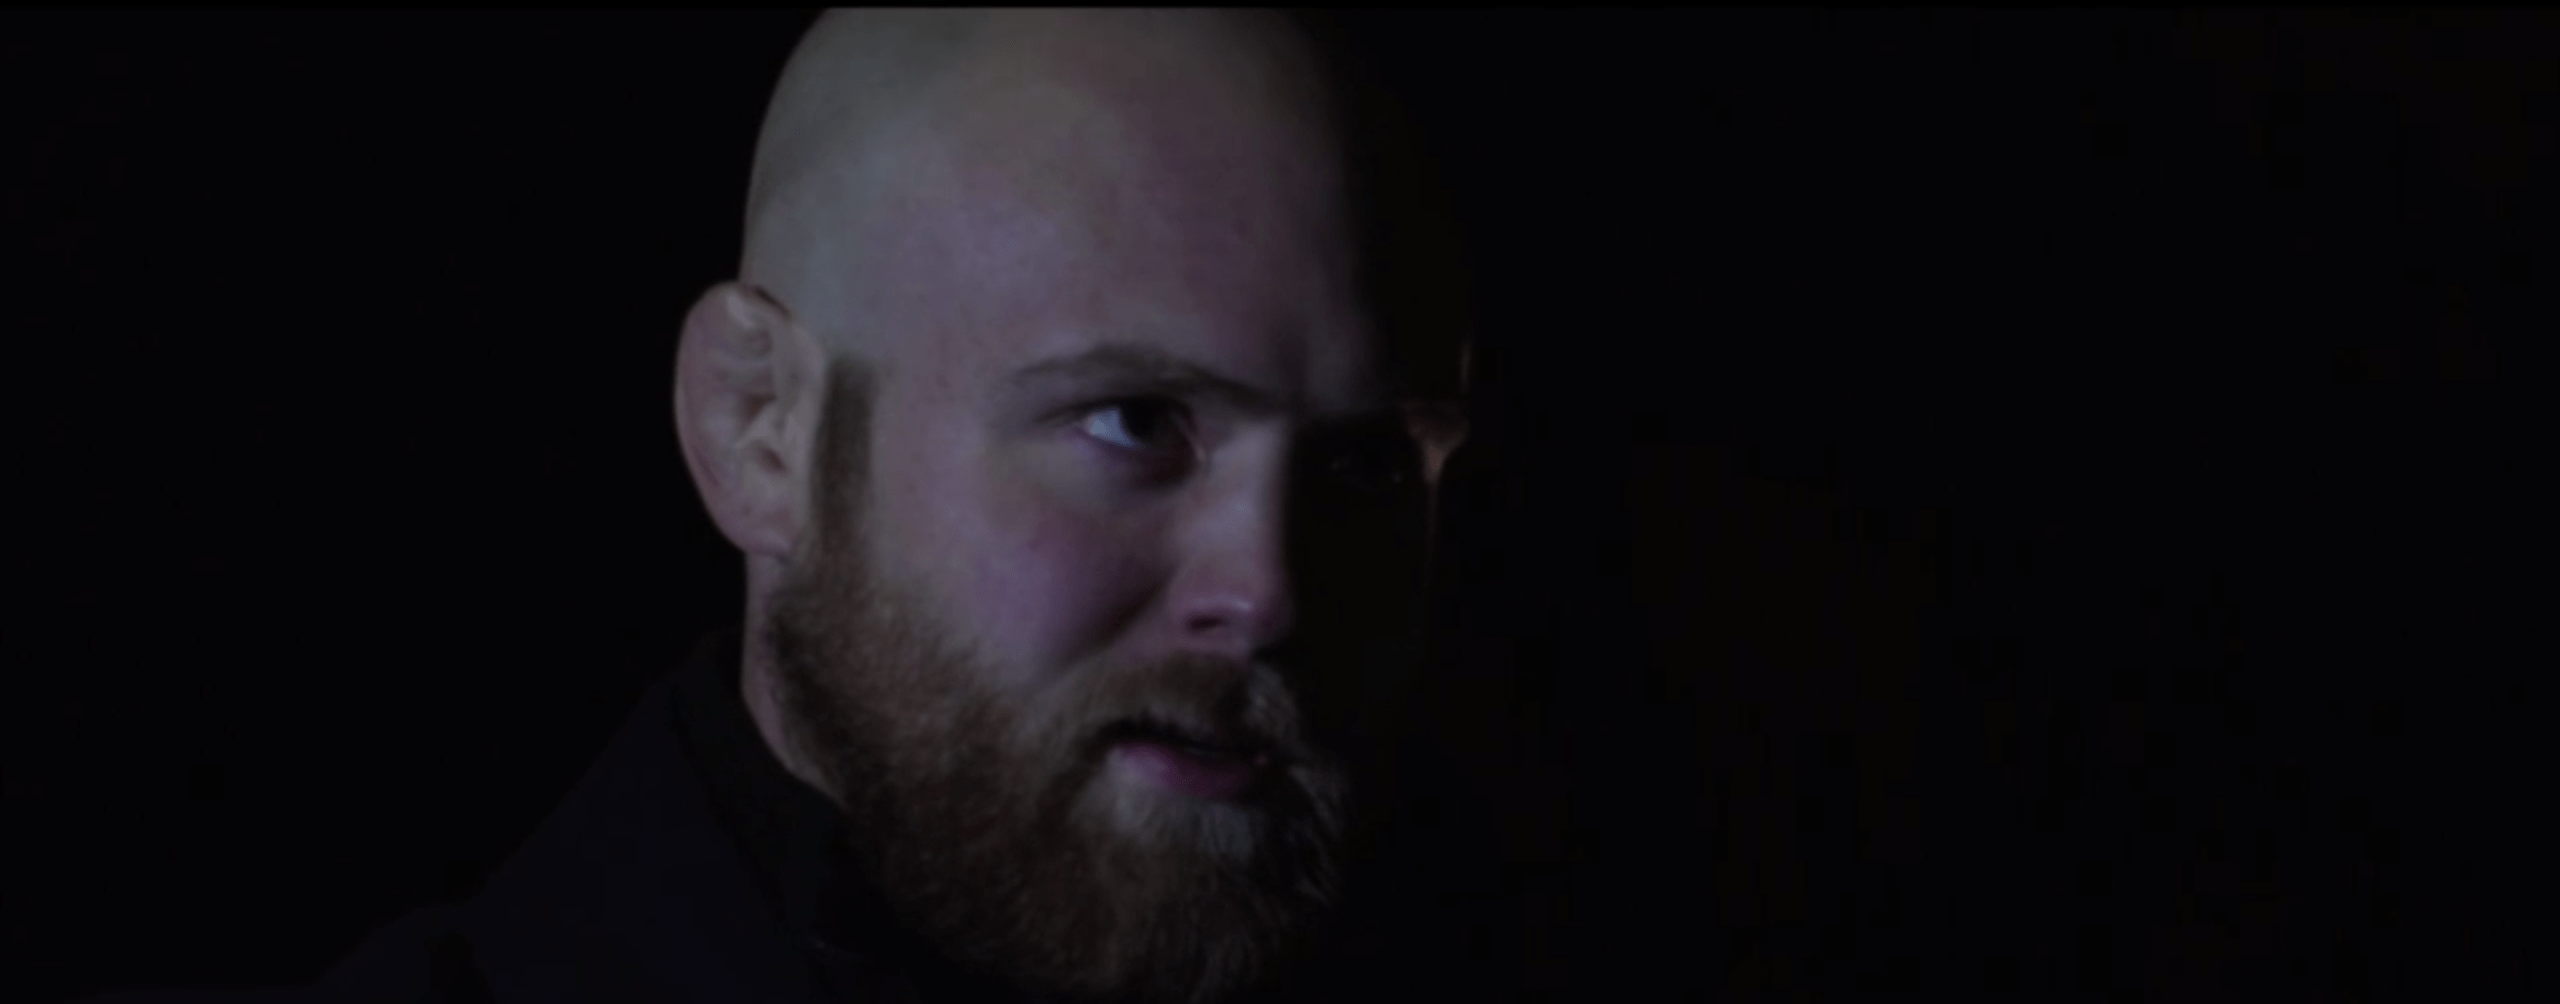 Scowling bald man with a beard